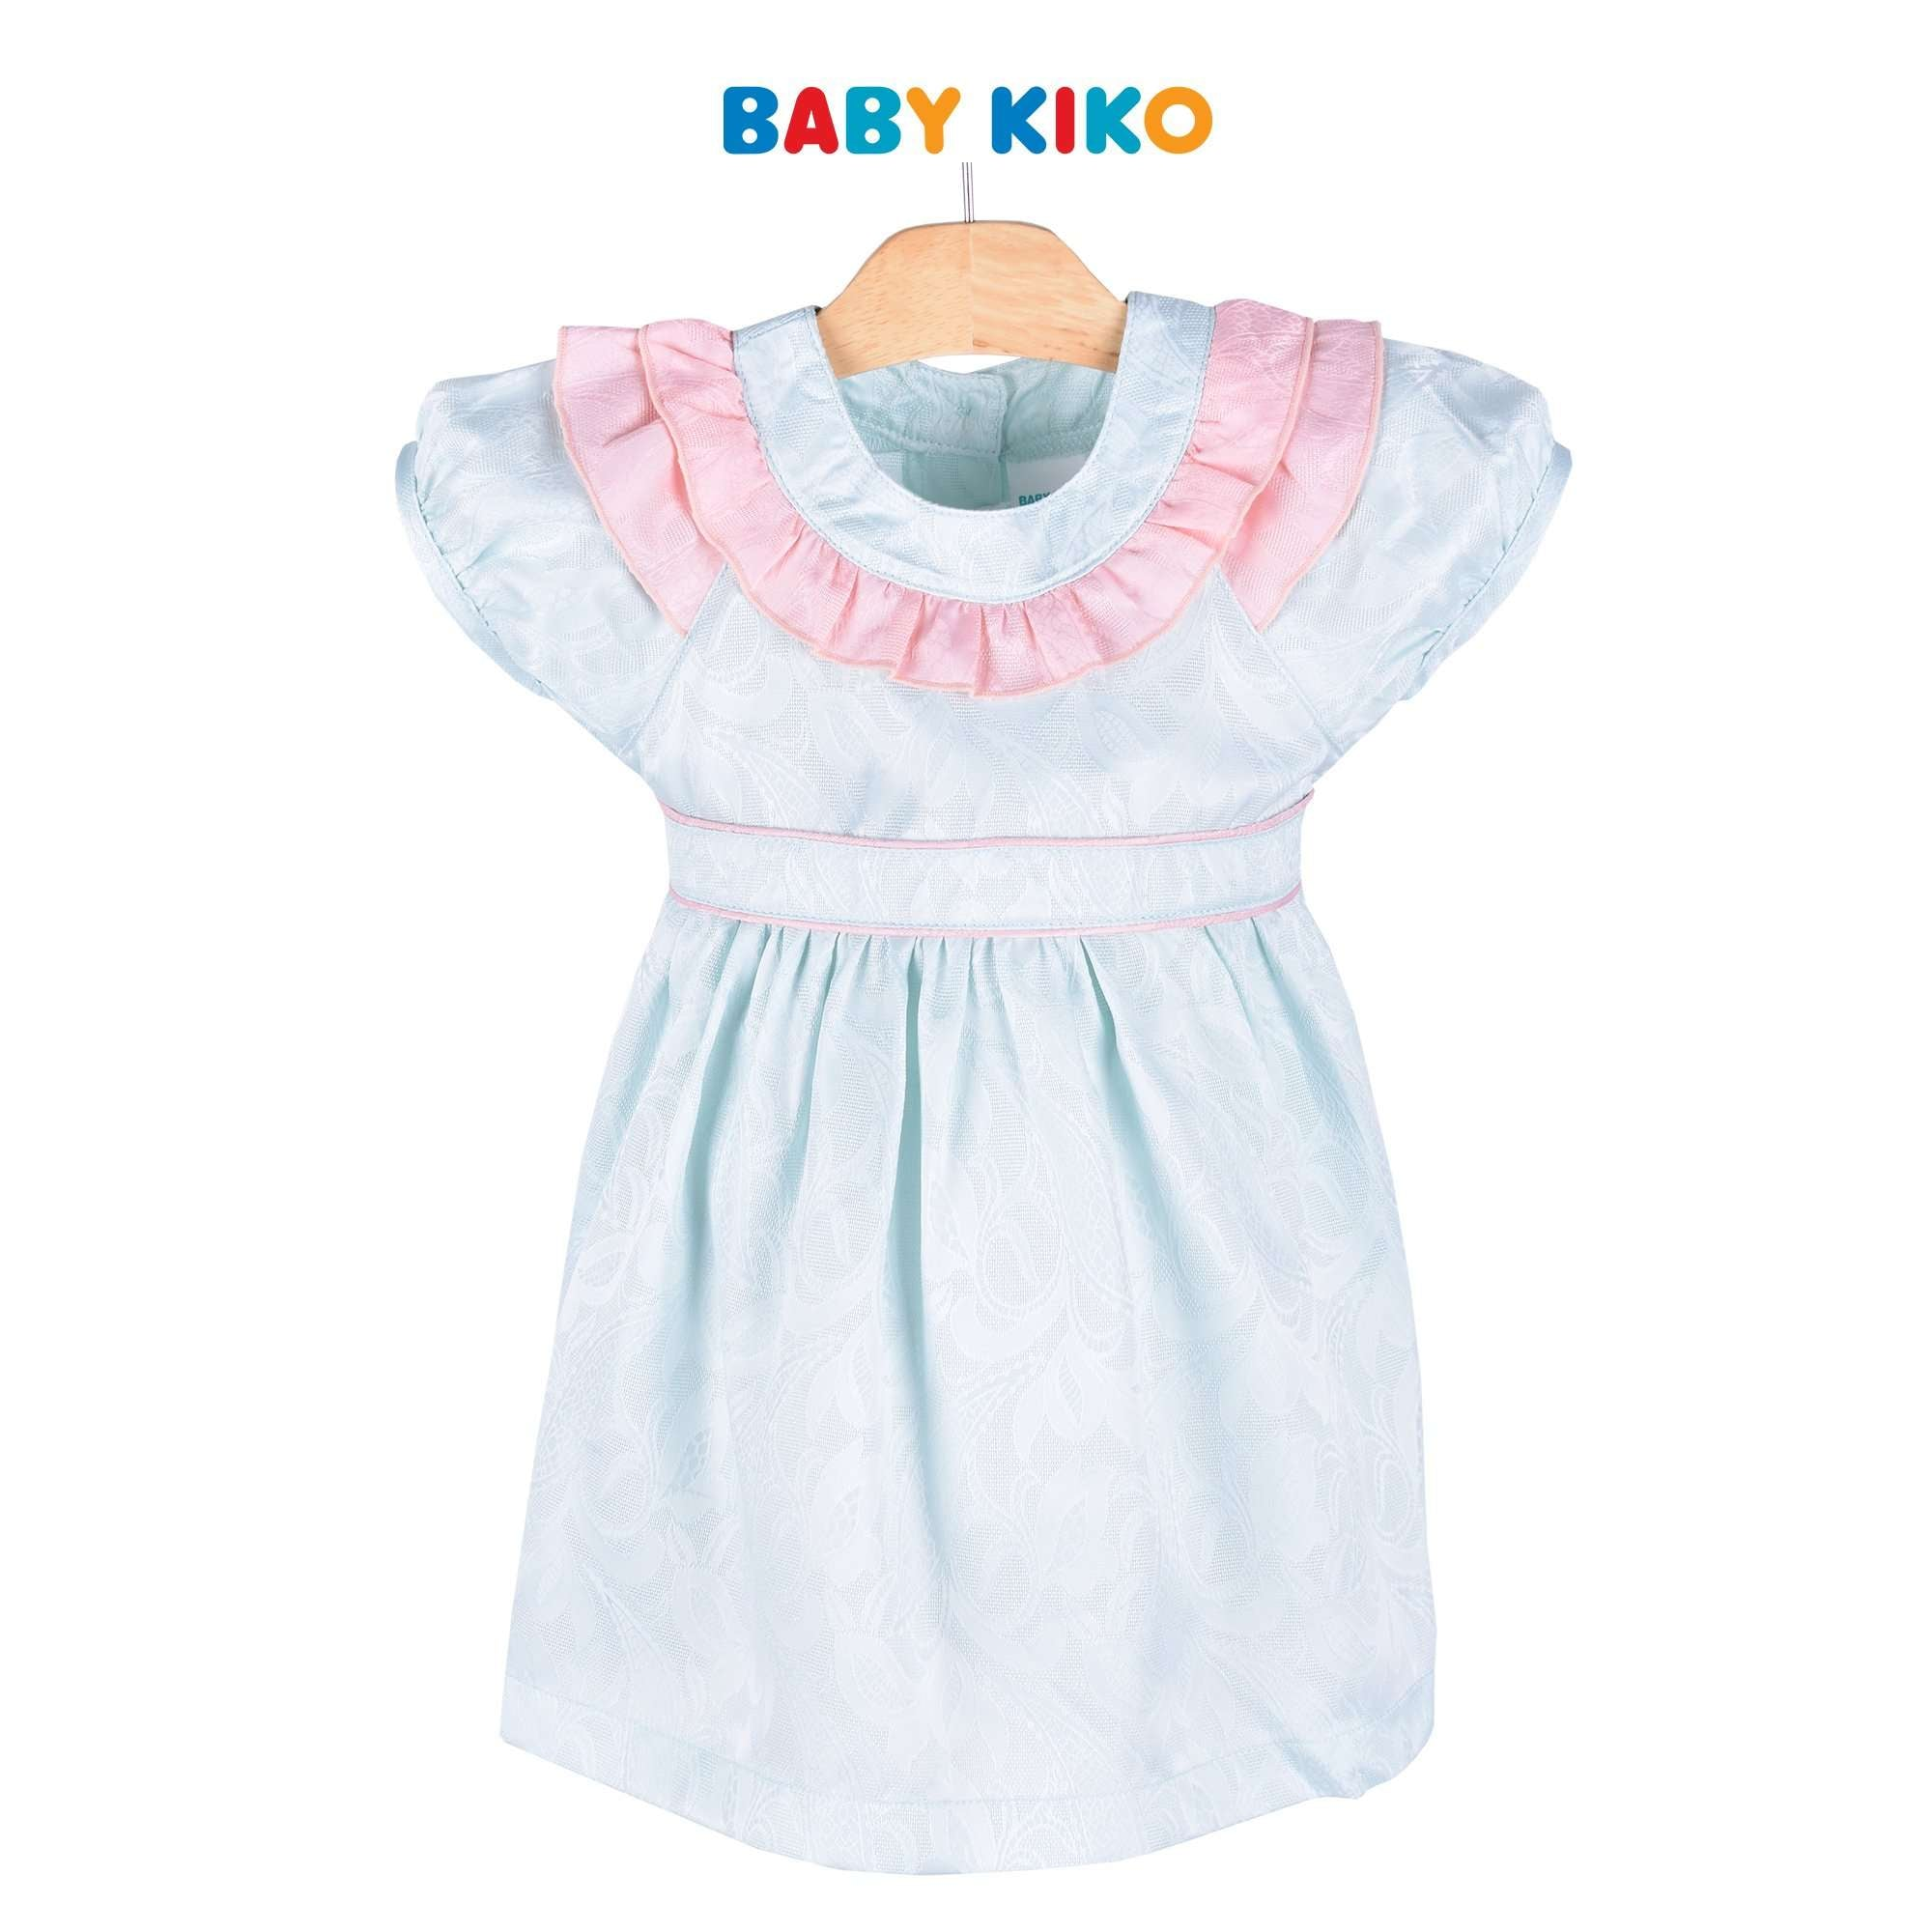 Baby KIKO Toddler Girl Short Sleeve Dress - Blue 315090-312 : Buy Baby KIKO online at CMG.MY